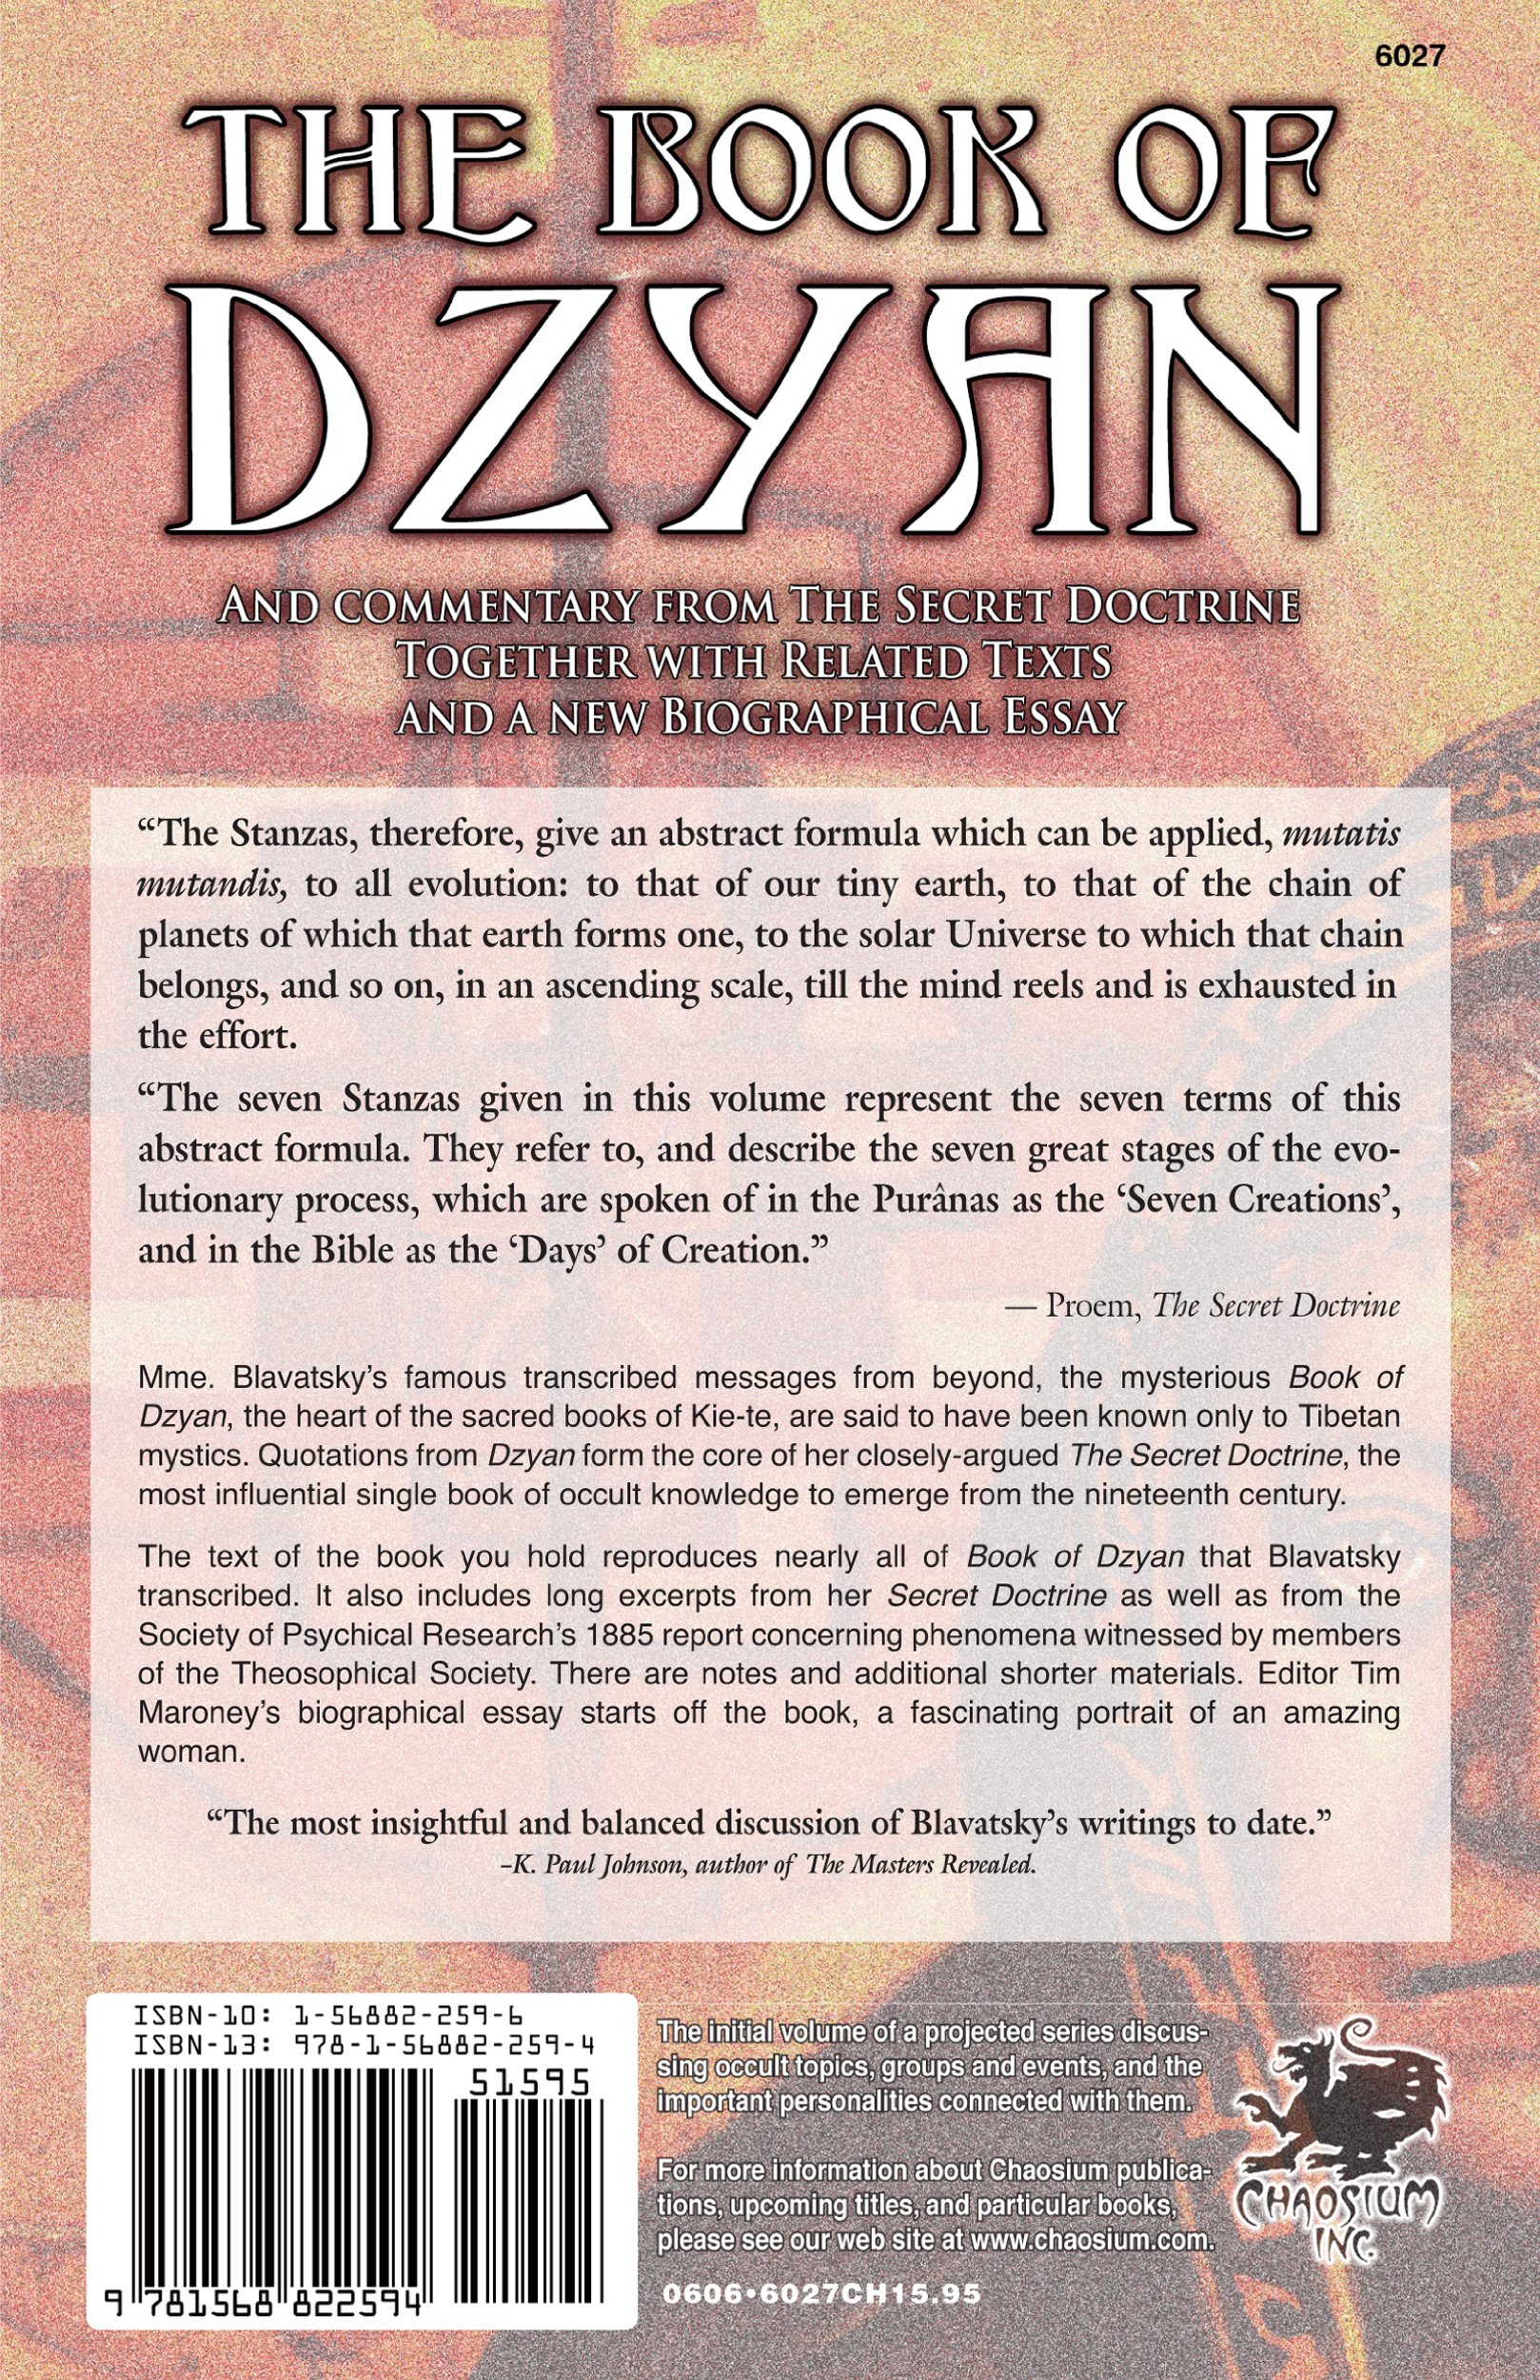 the book of dzyan the known text the secret doctrine additional the book of dzyan the known text the secret doctrine additional sources a life of mme blavatsky call of cthulhu fiction helena petrovna blavatsky